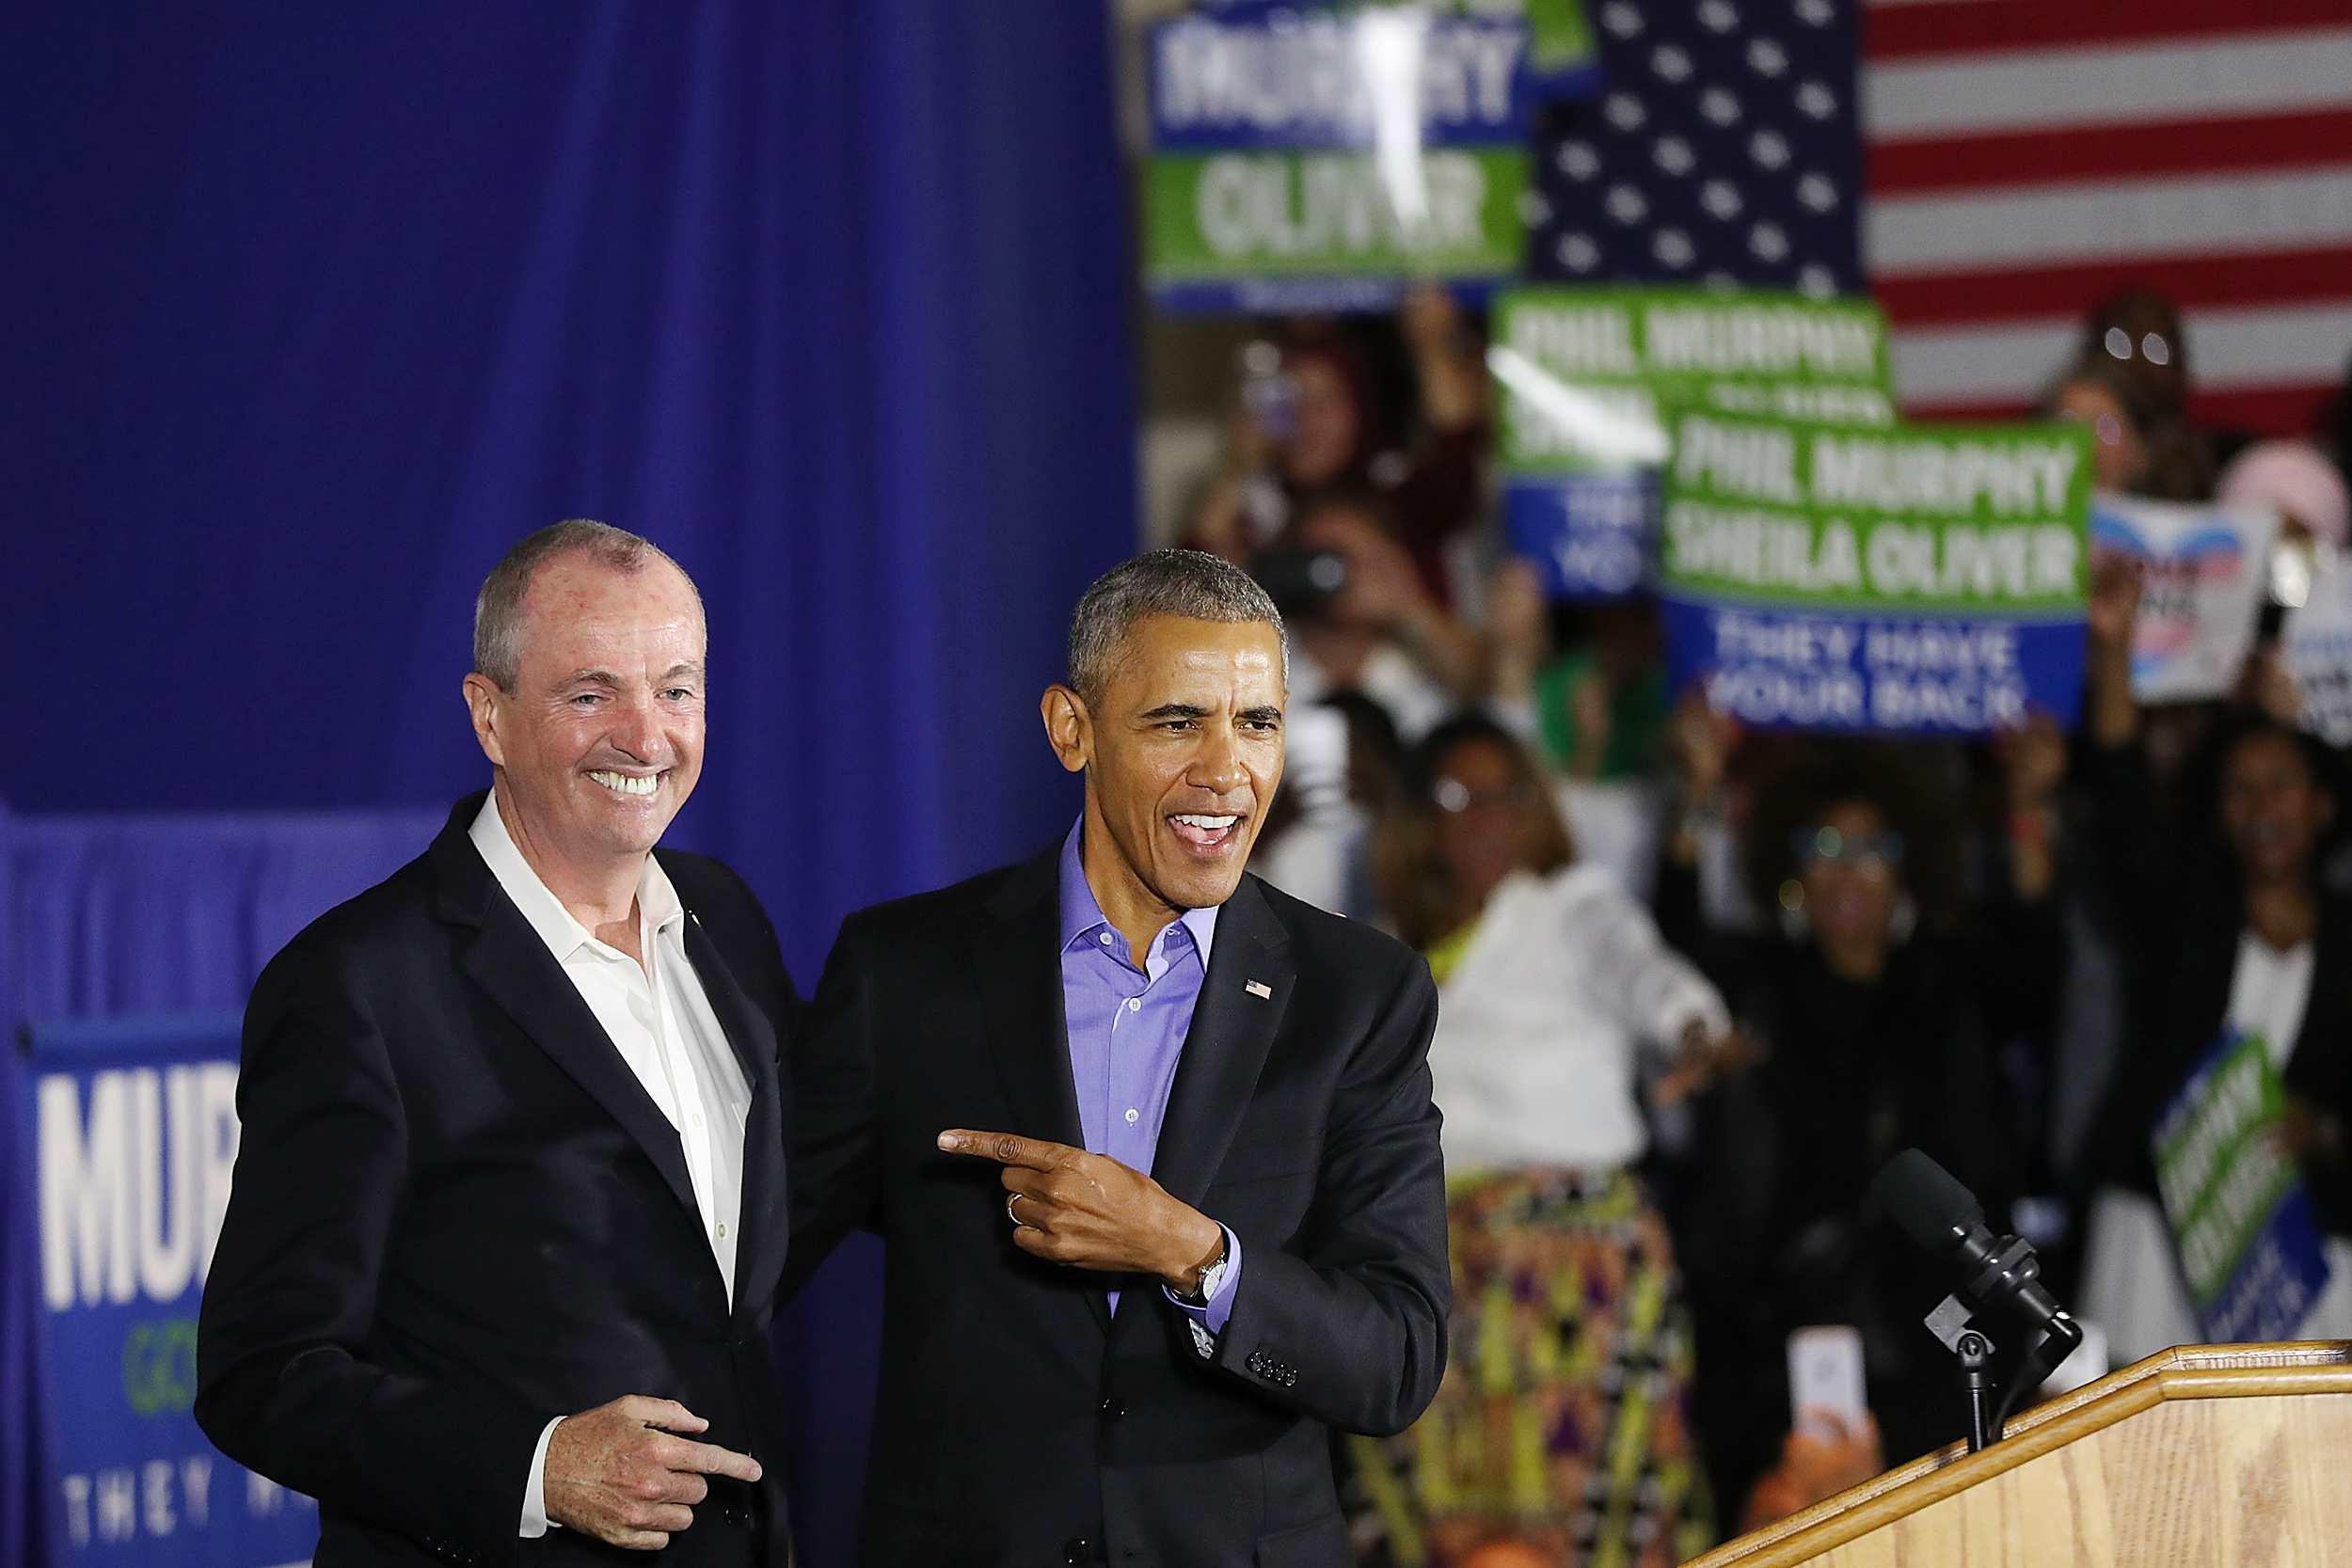 Image: Phil Murphy and Barack Obama